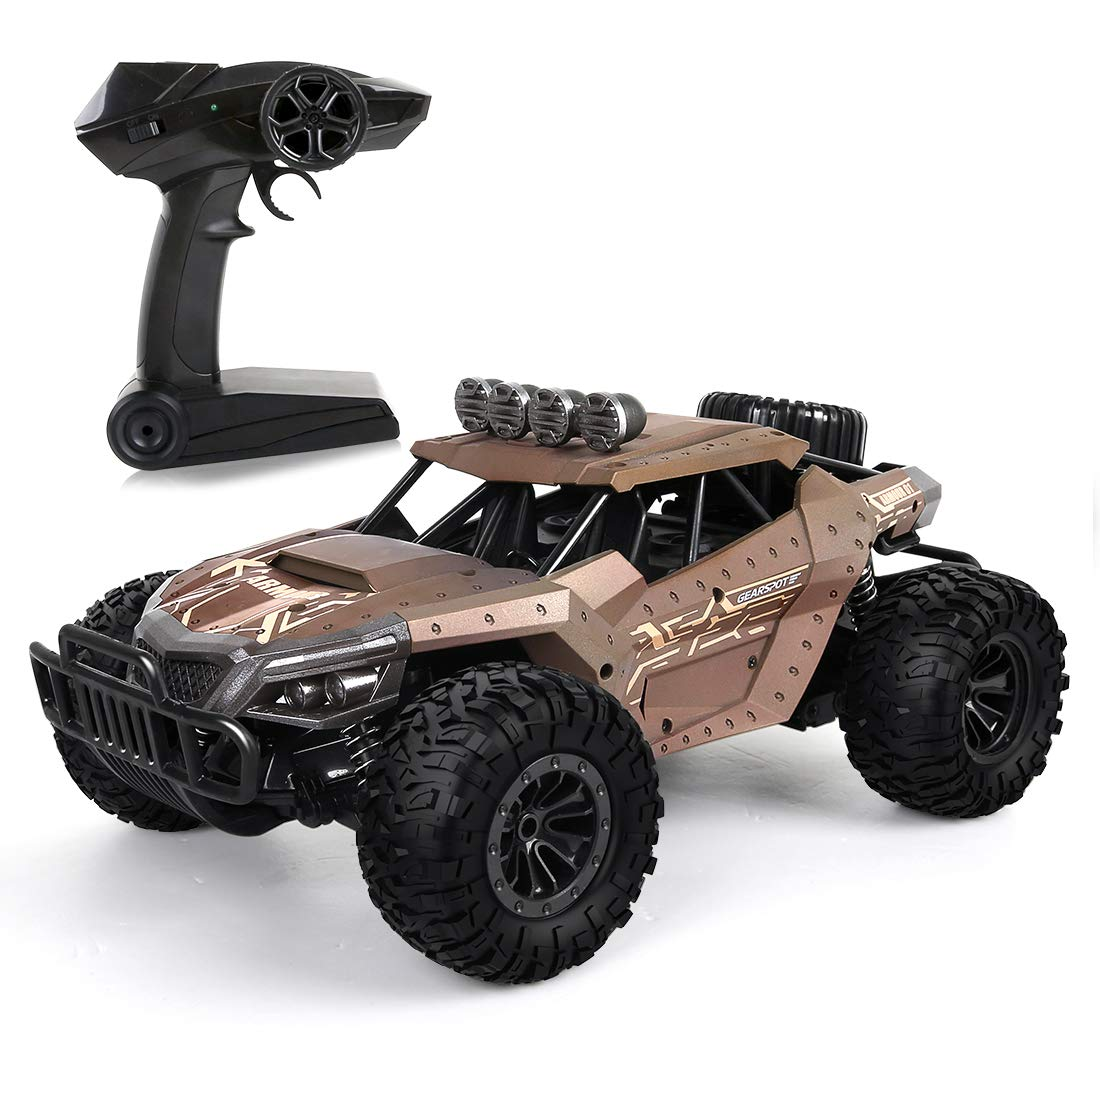 Yellow LBLA Rc Car 2.4Ghz Controlled Car Rtr Fast Racing Cars 20 km h Remote Control Car Offroad Monster Truck Rc Vehicle (Yellow)